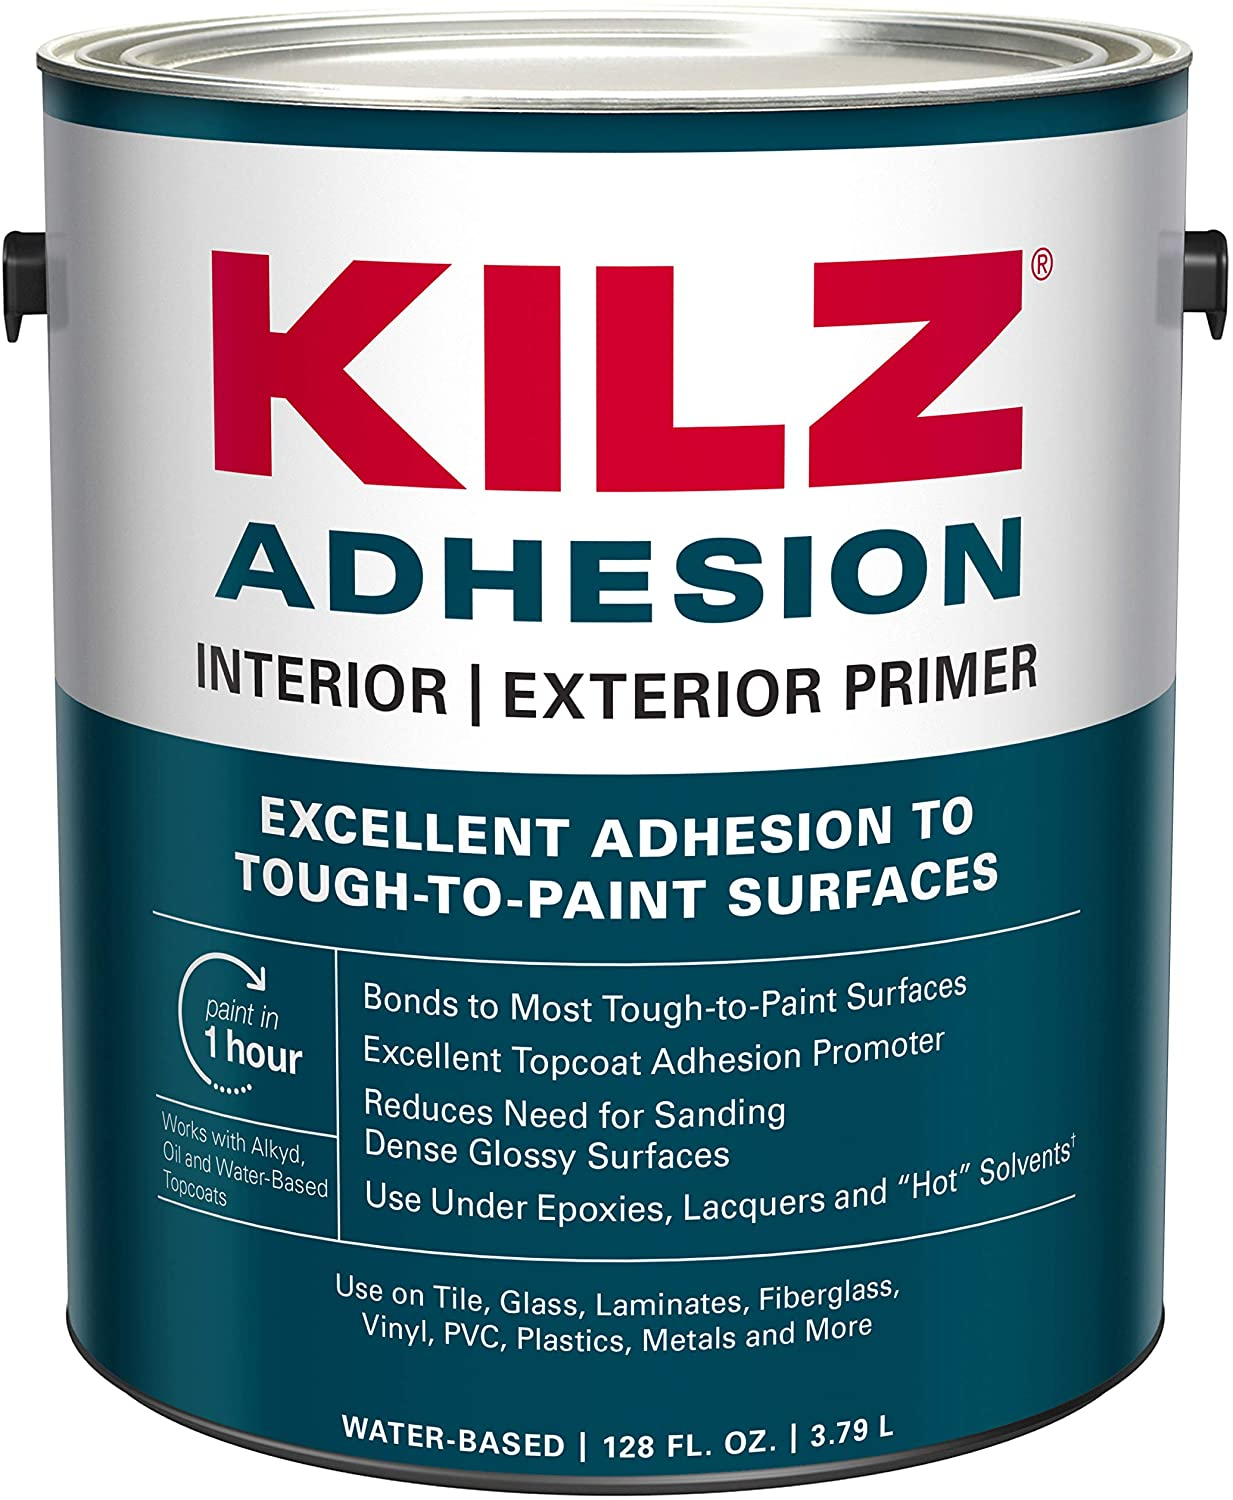 KILZ Adhesion High-Bonding Interior And Exterior Primer